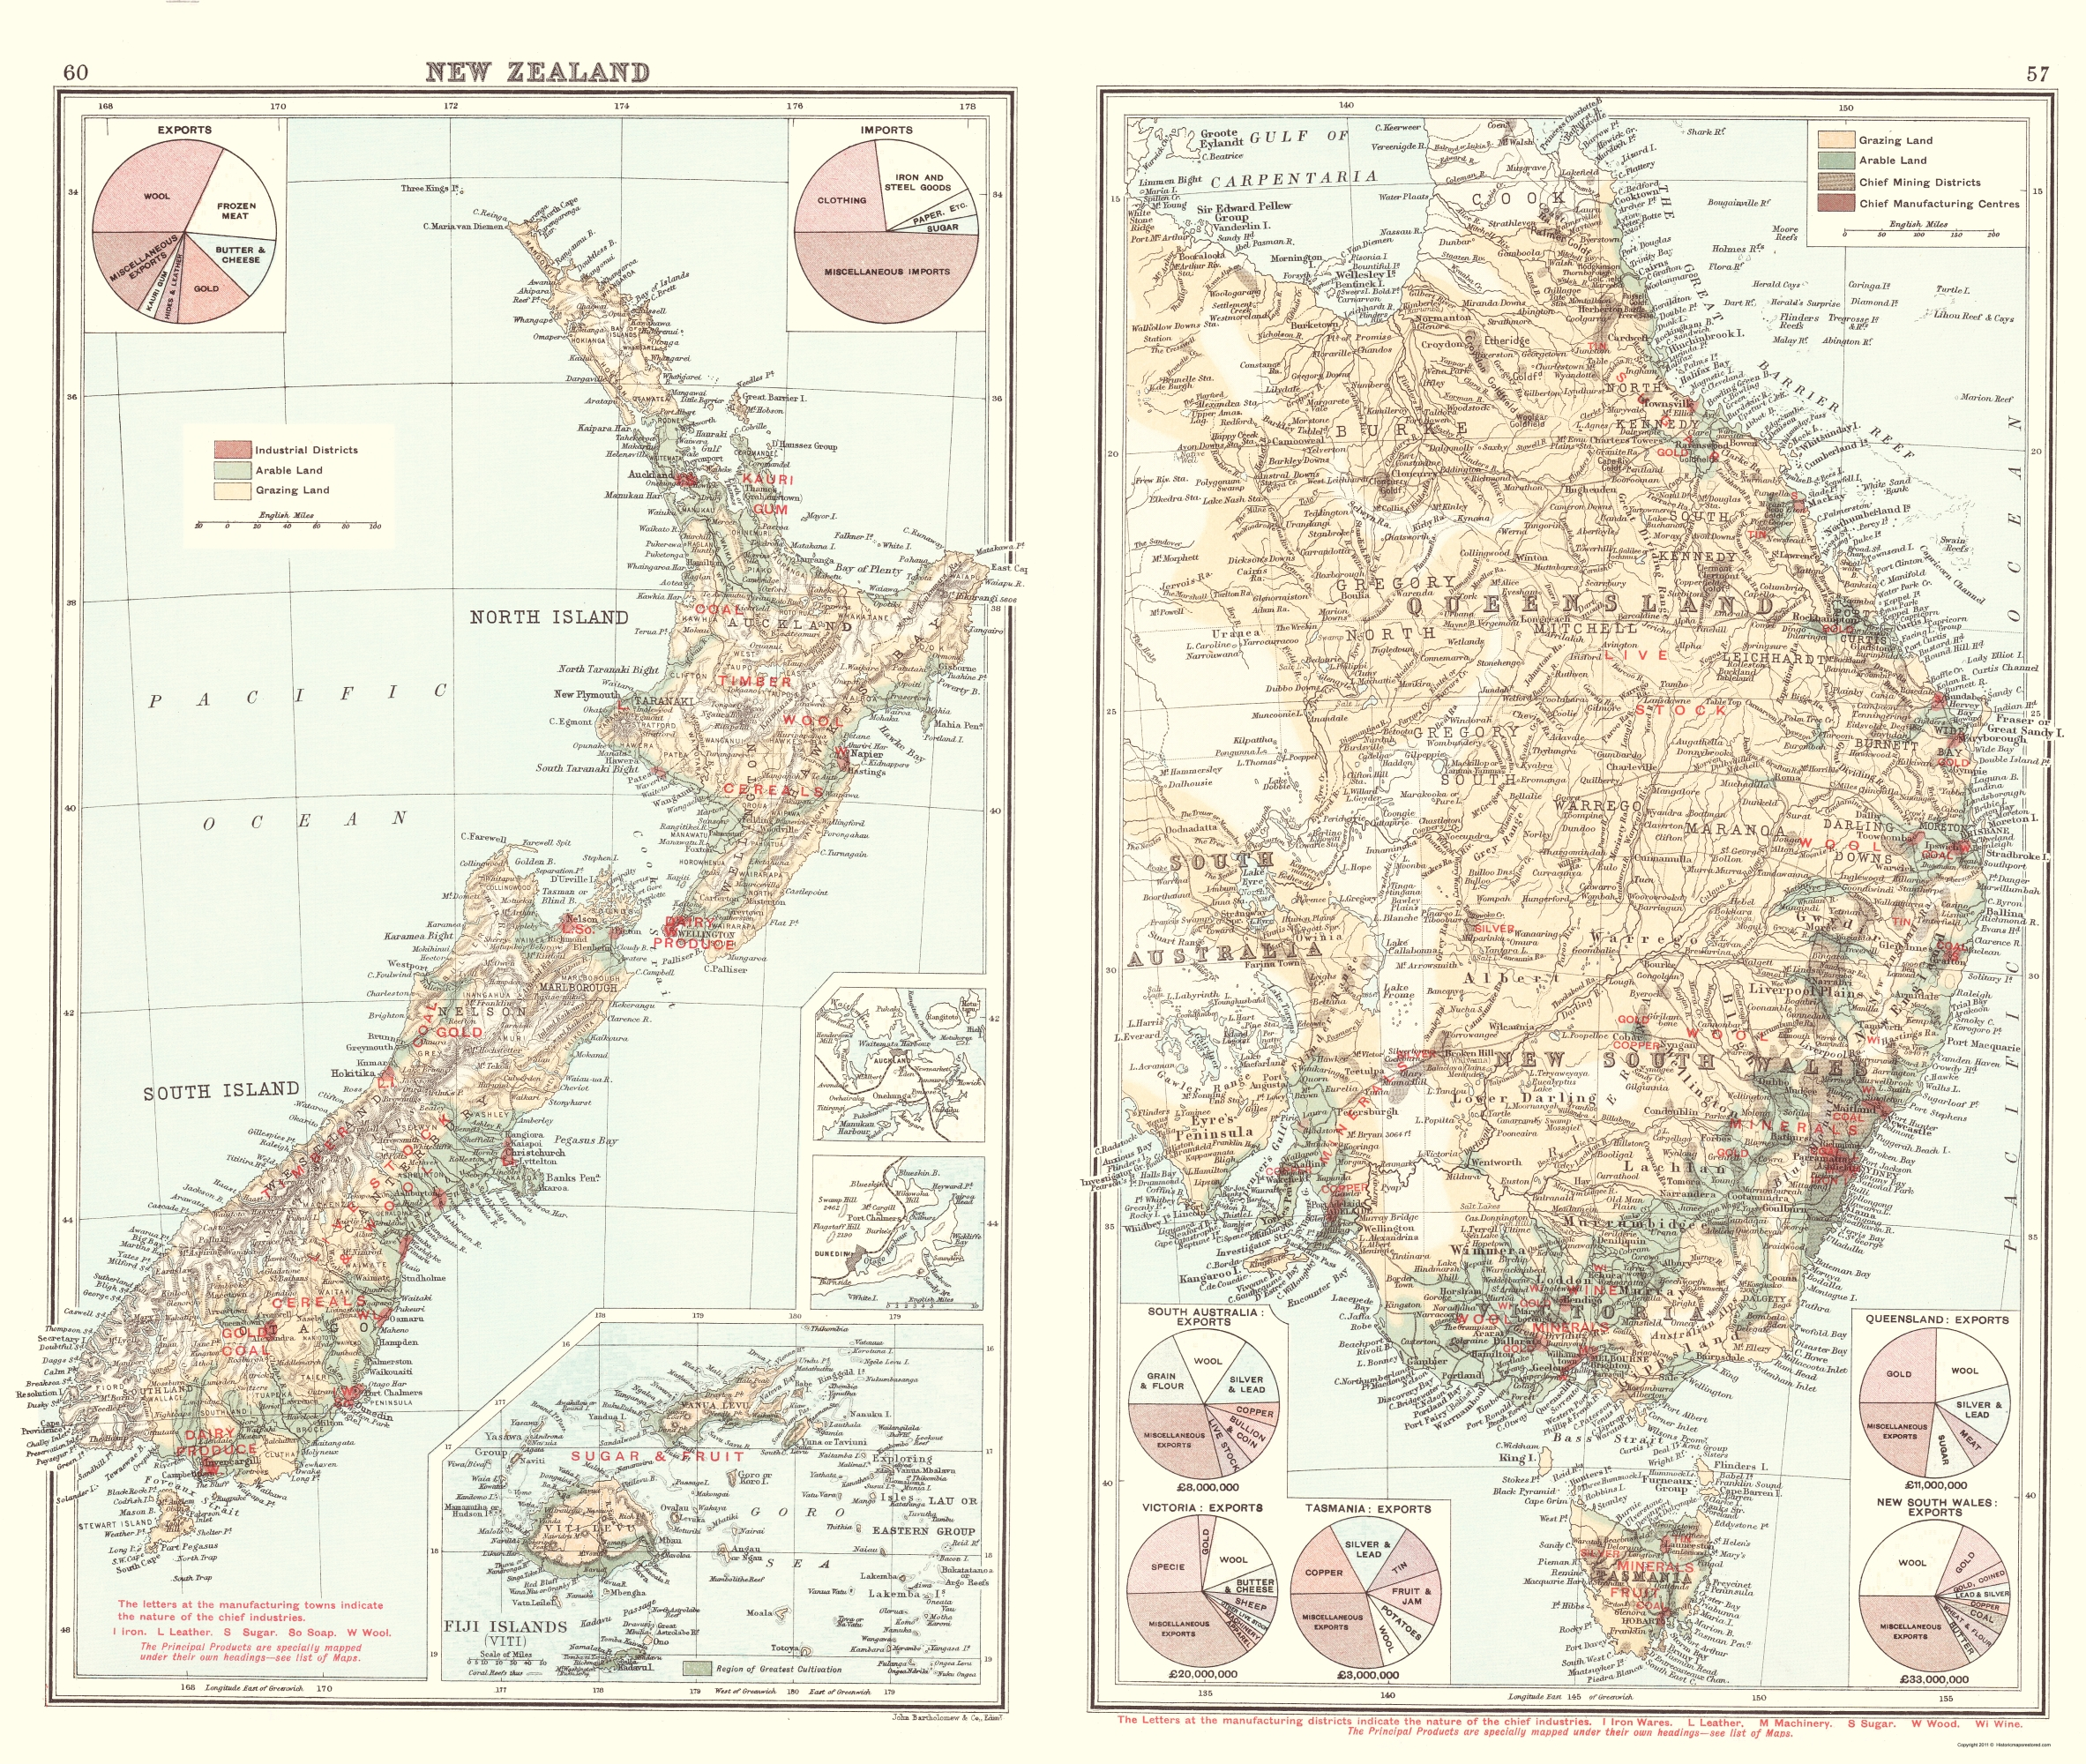 Map Of New Zealand Australia.Old Oceania Map Imports And Exports New Zealand Australia 1907 23 X 27